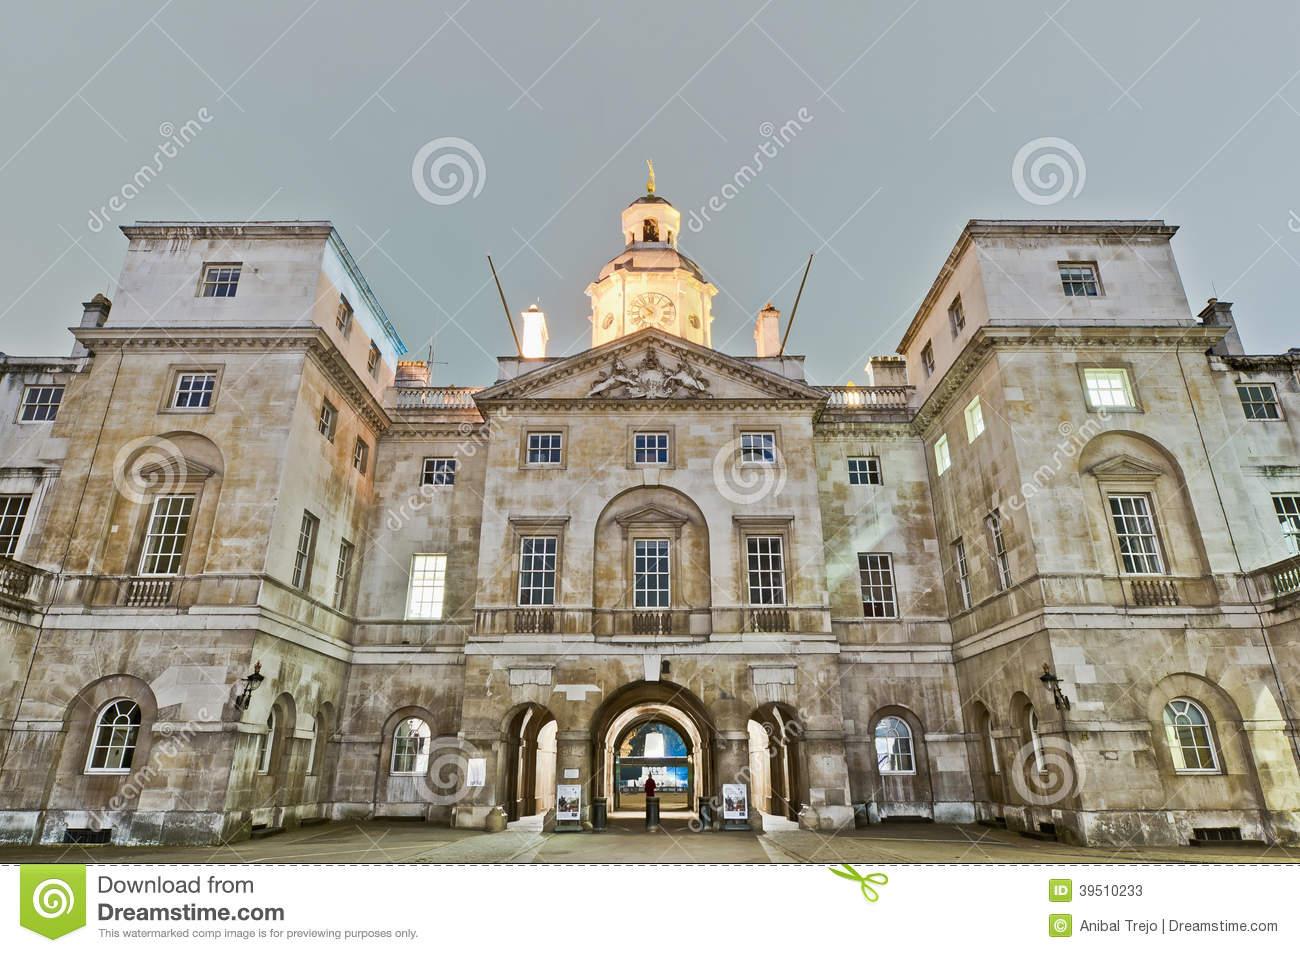 Horse Guards at London, England